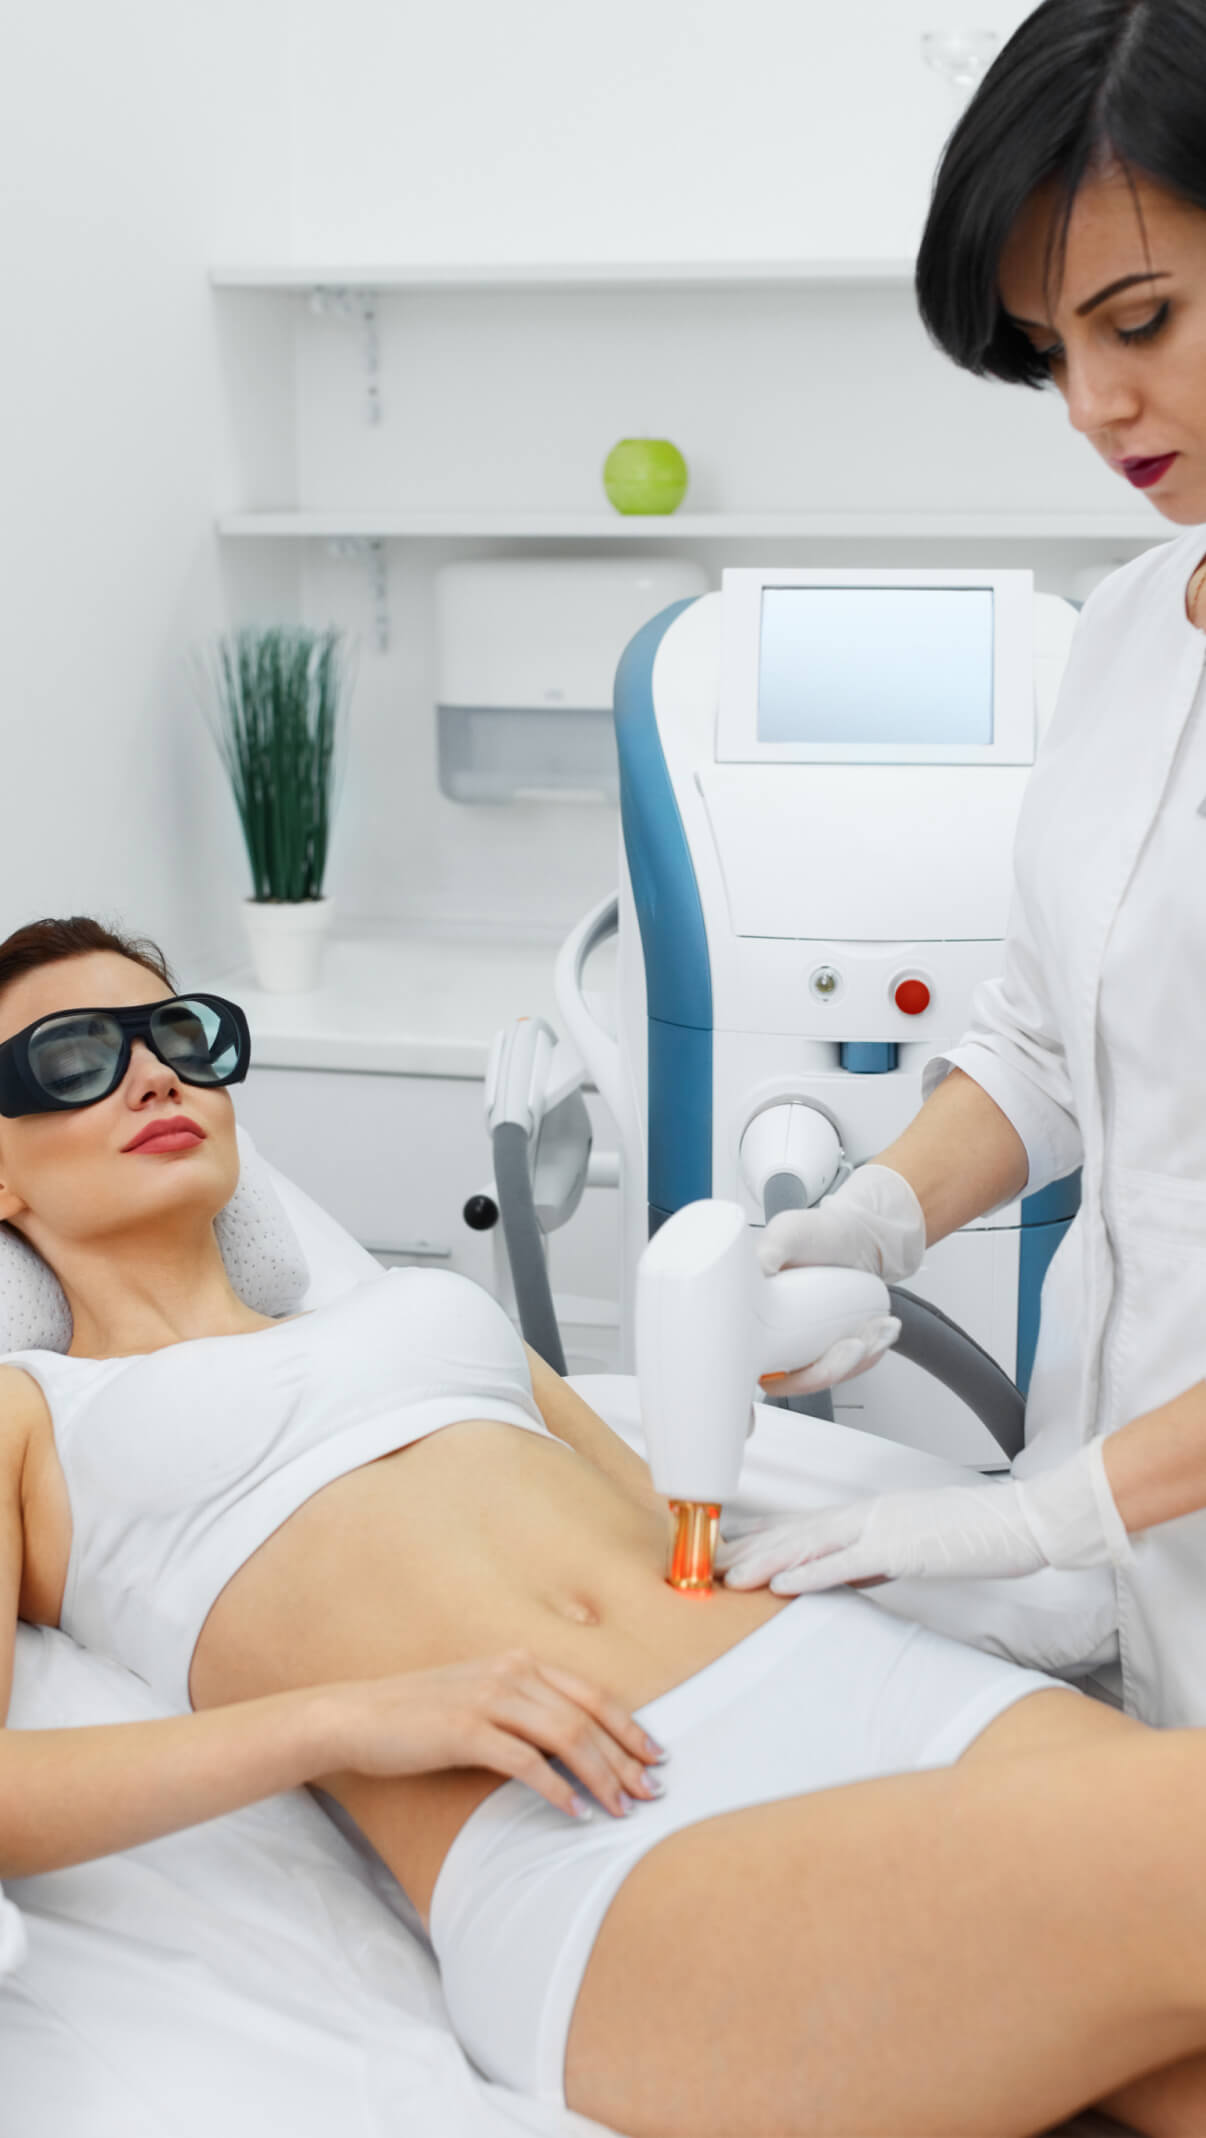 RF Microneedling for Stretch Marks